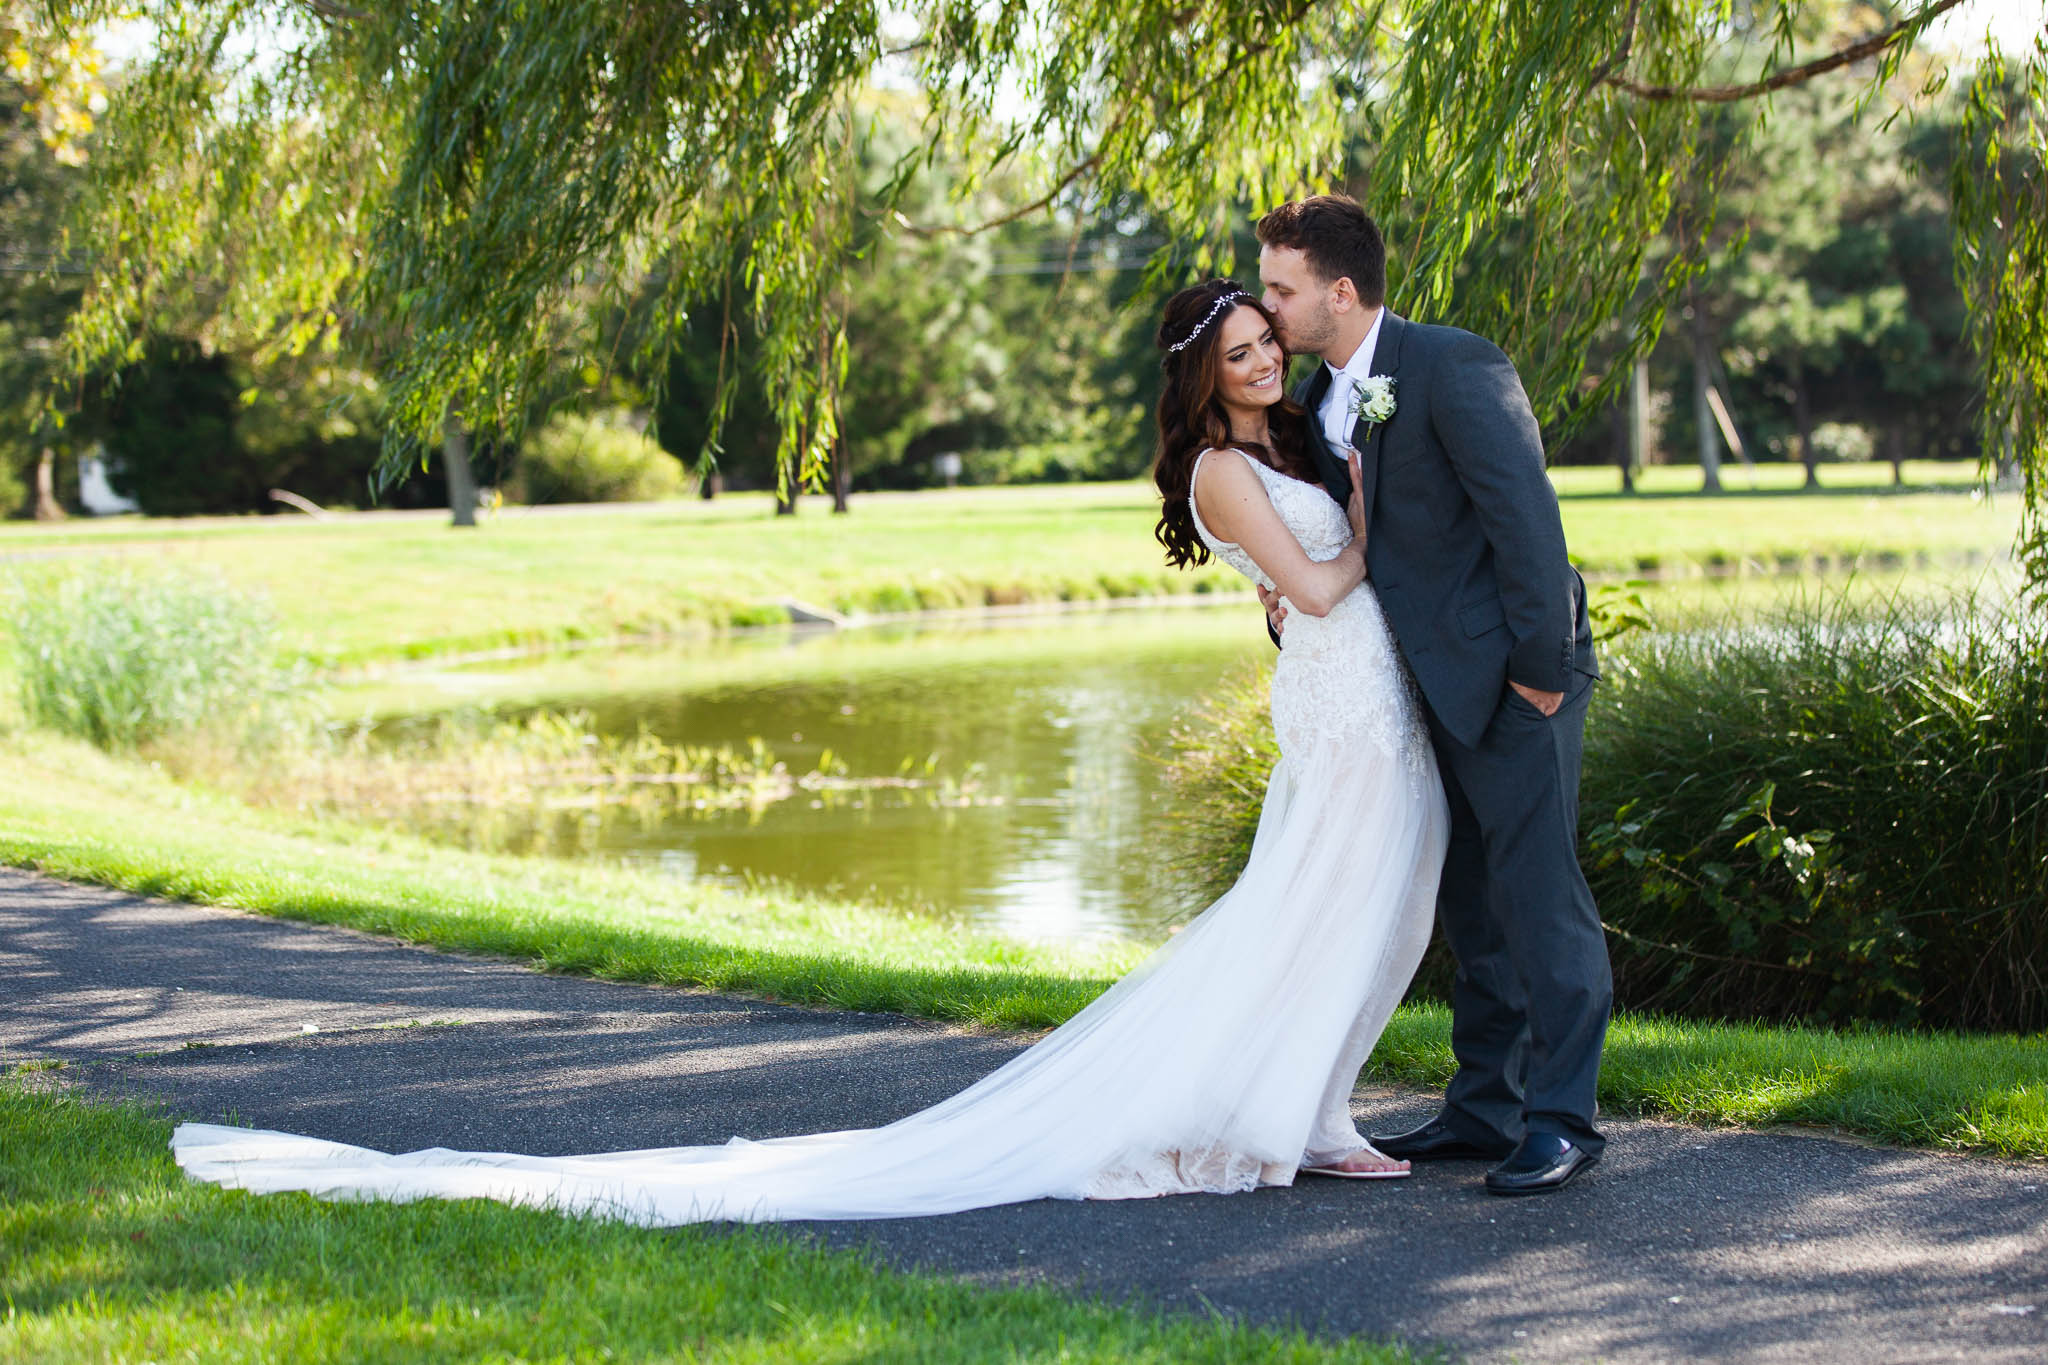 Madison and Jeff - She was so relaxed, sweet and kept us all calm. I will forever recommend Danielle!